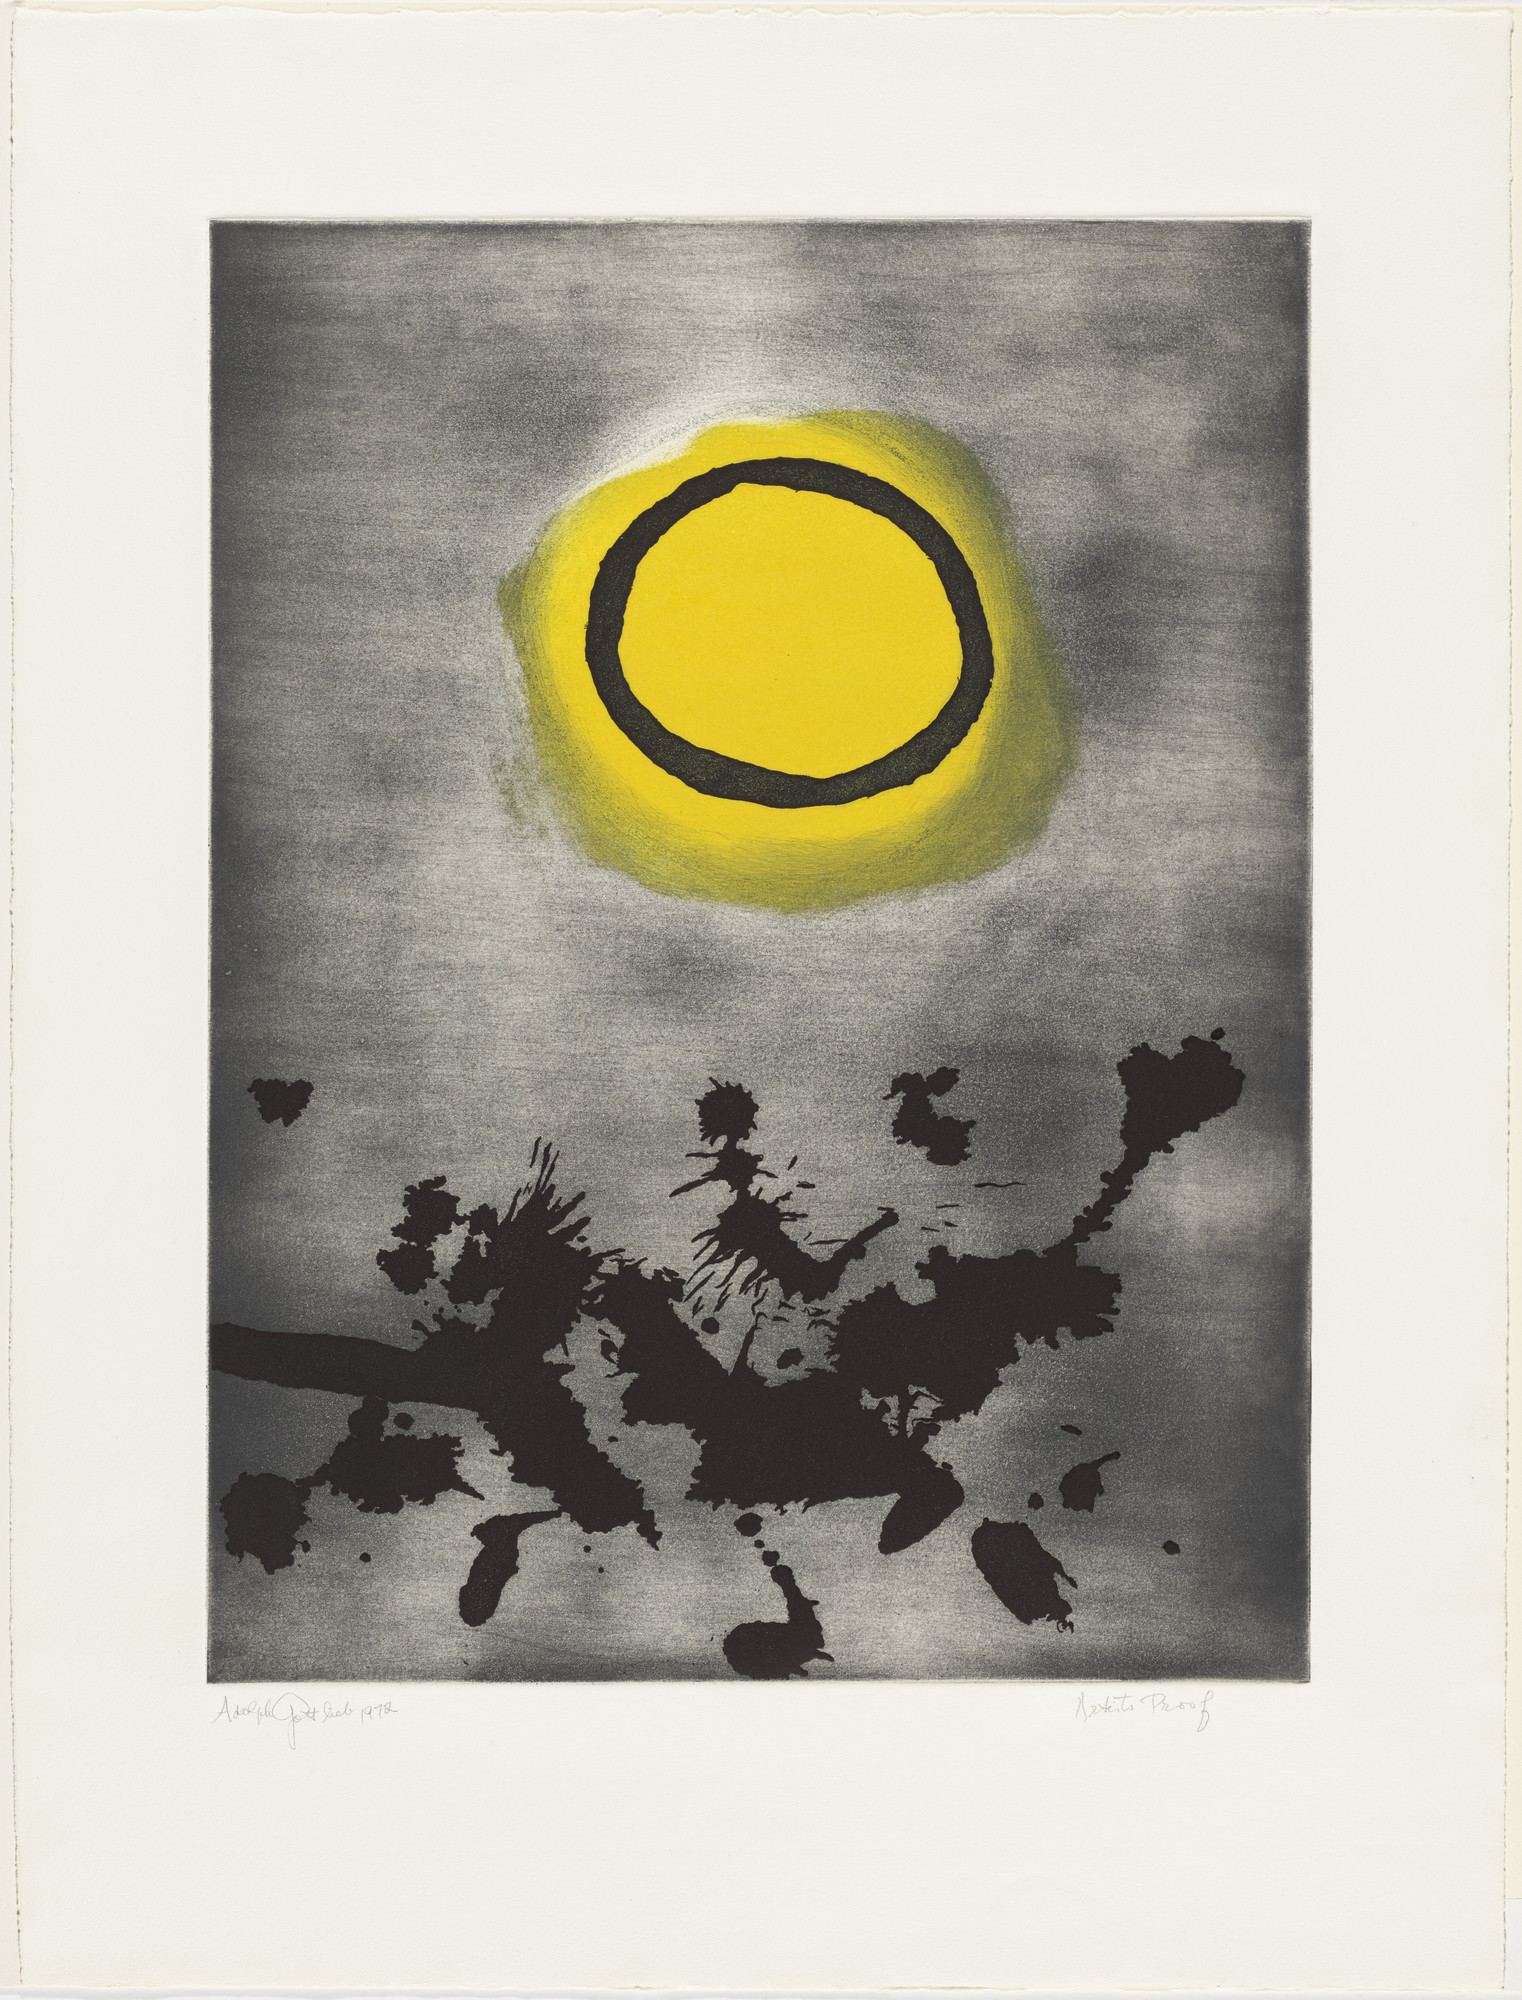 Adolph Gottlieb. Untitled from Prints for Phoenix House. 1972